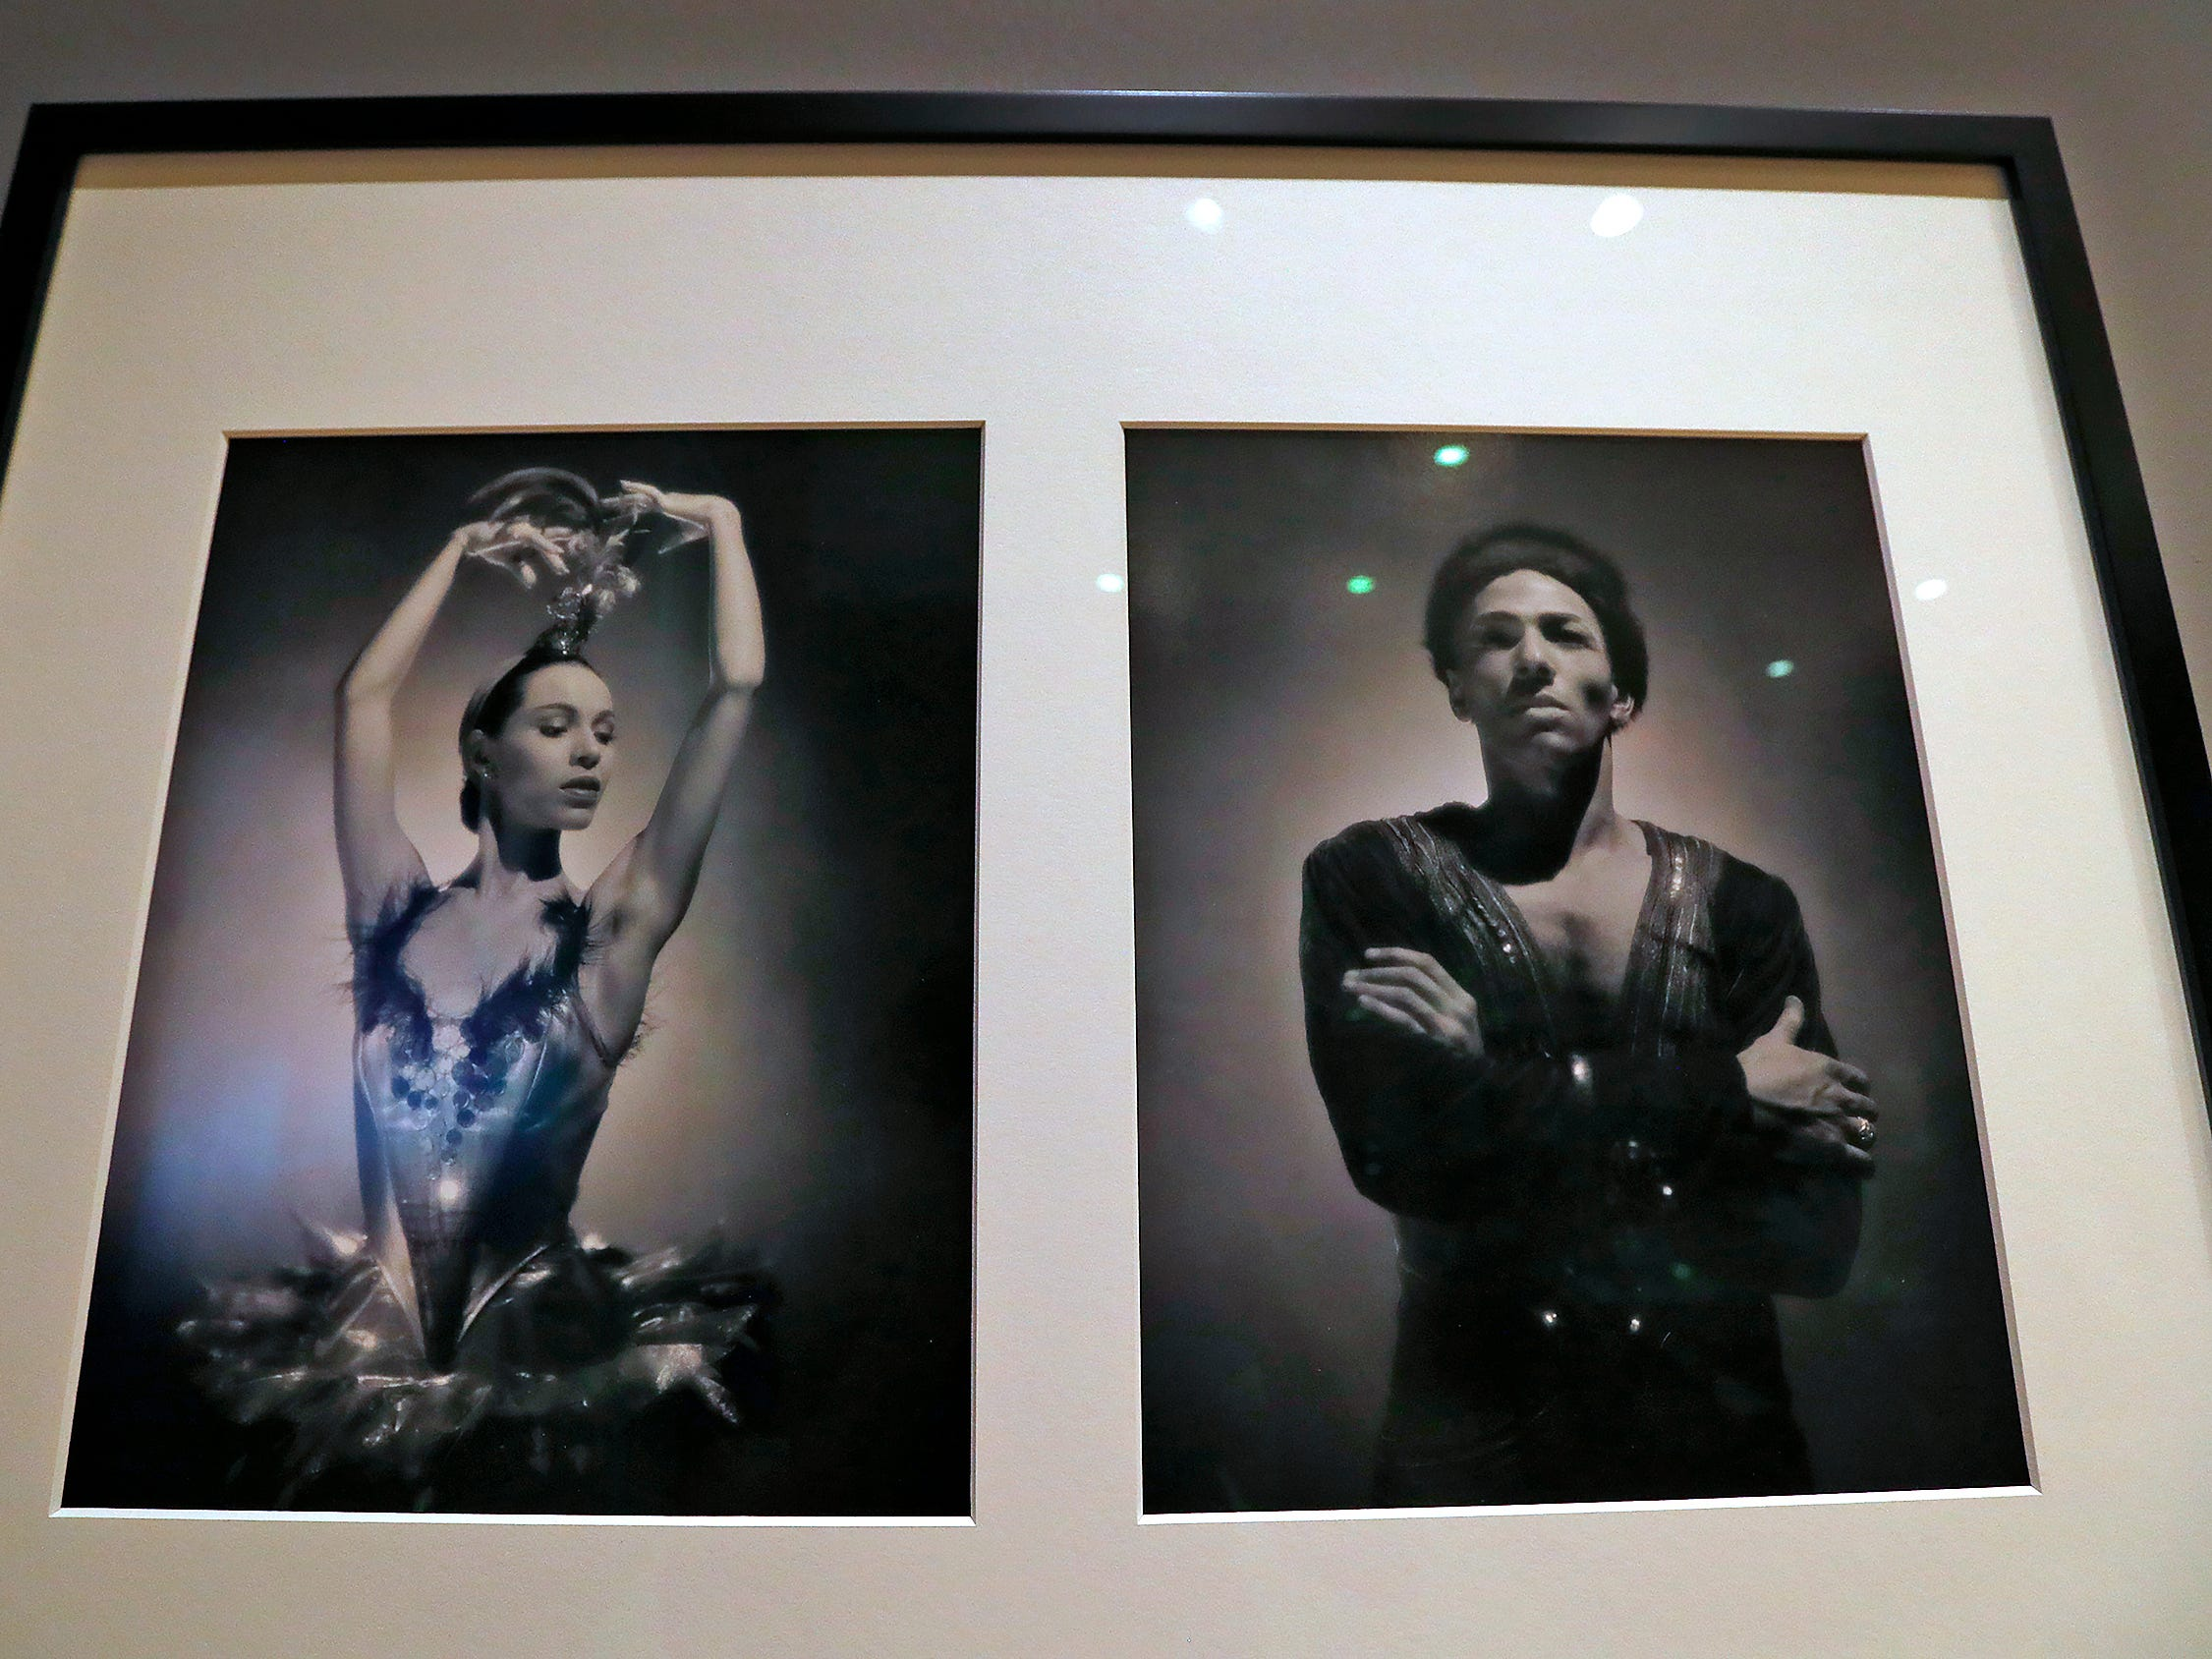 oThese 1949 George Platt Lynes portraits of Maria Tallchief and Francisco Moncion of the ballet Firebird, from the Collections of the Kinsey Institute, Indiana University, are seen at the George Platt Lynes exhibit at Newfields, Wednesday, Sept. 26, 2018.  Lynes gained fame as a commercial and ballet photogrqapher in the 1930s and 1940s, but he wanted to be known for the male nudes he captured of the male ballet dancers and others.  The exhibit runs Sept. 30, 2018 through Feb. 24, 2019.